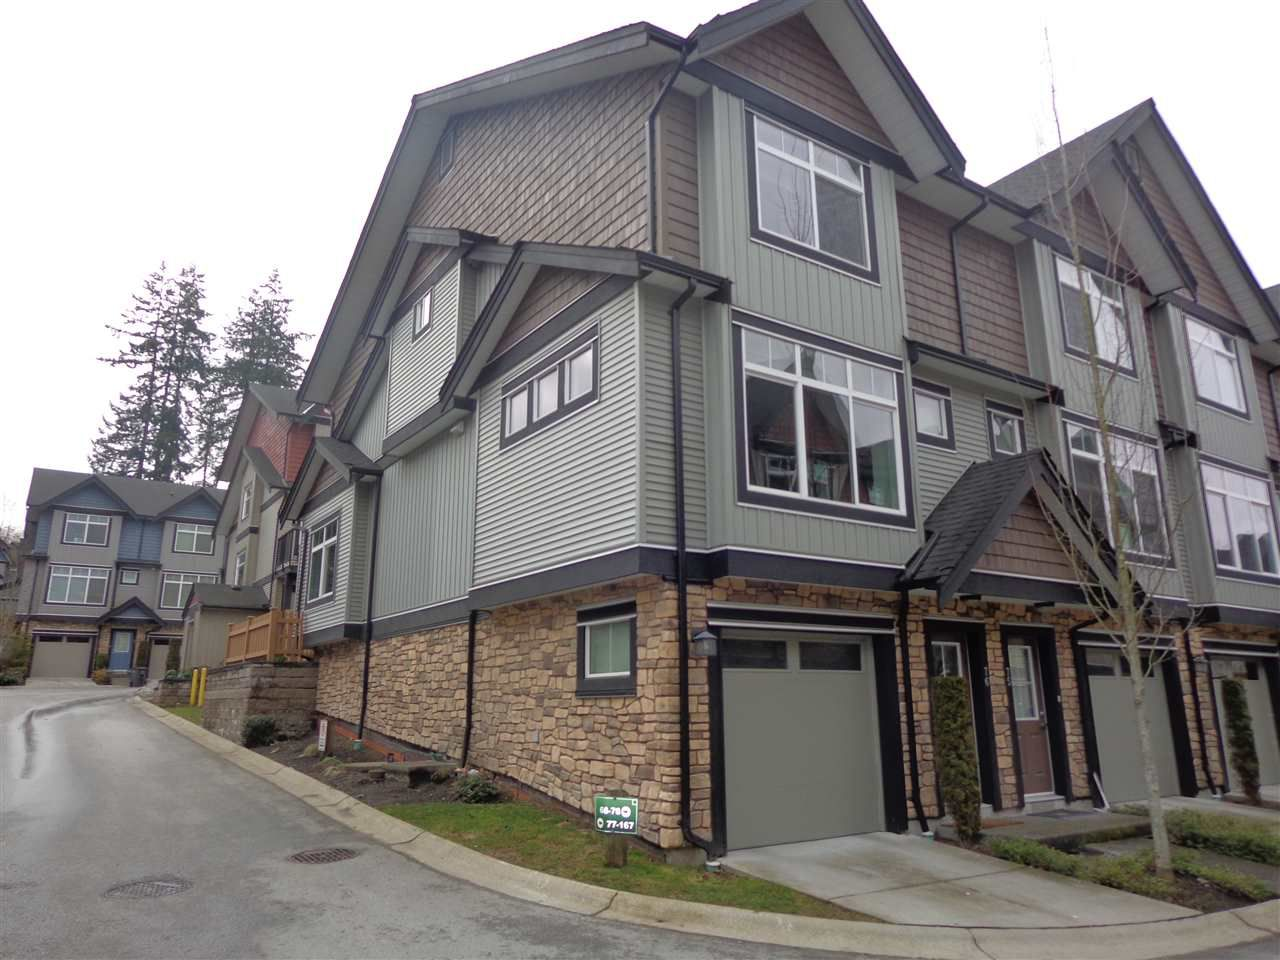 """Main Photo: 76 6299 144 Street in Surrey: Sullivan Station Townhouse for sale in """"ALTURA"""" : MLS®# R2141156"""